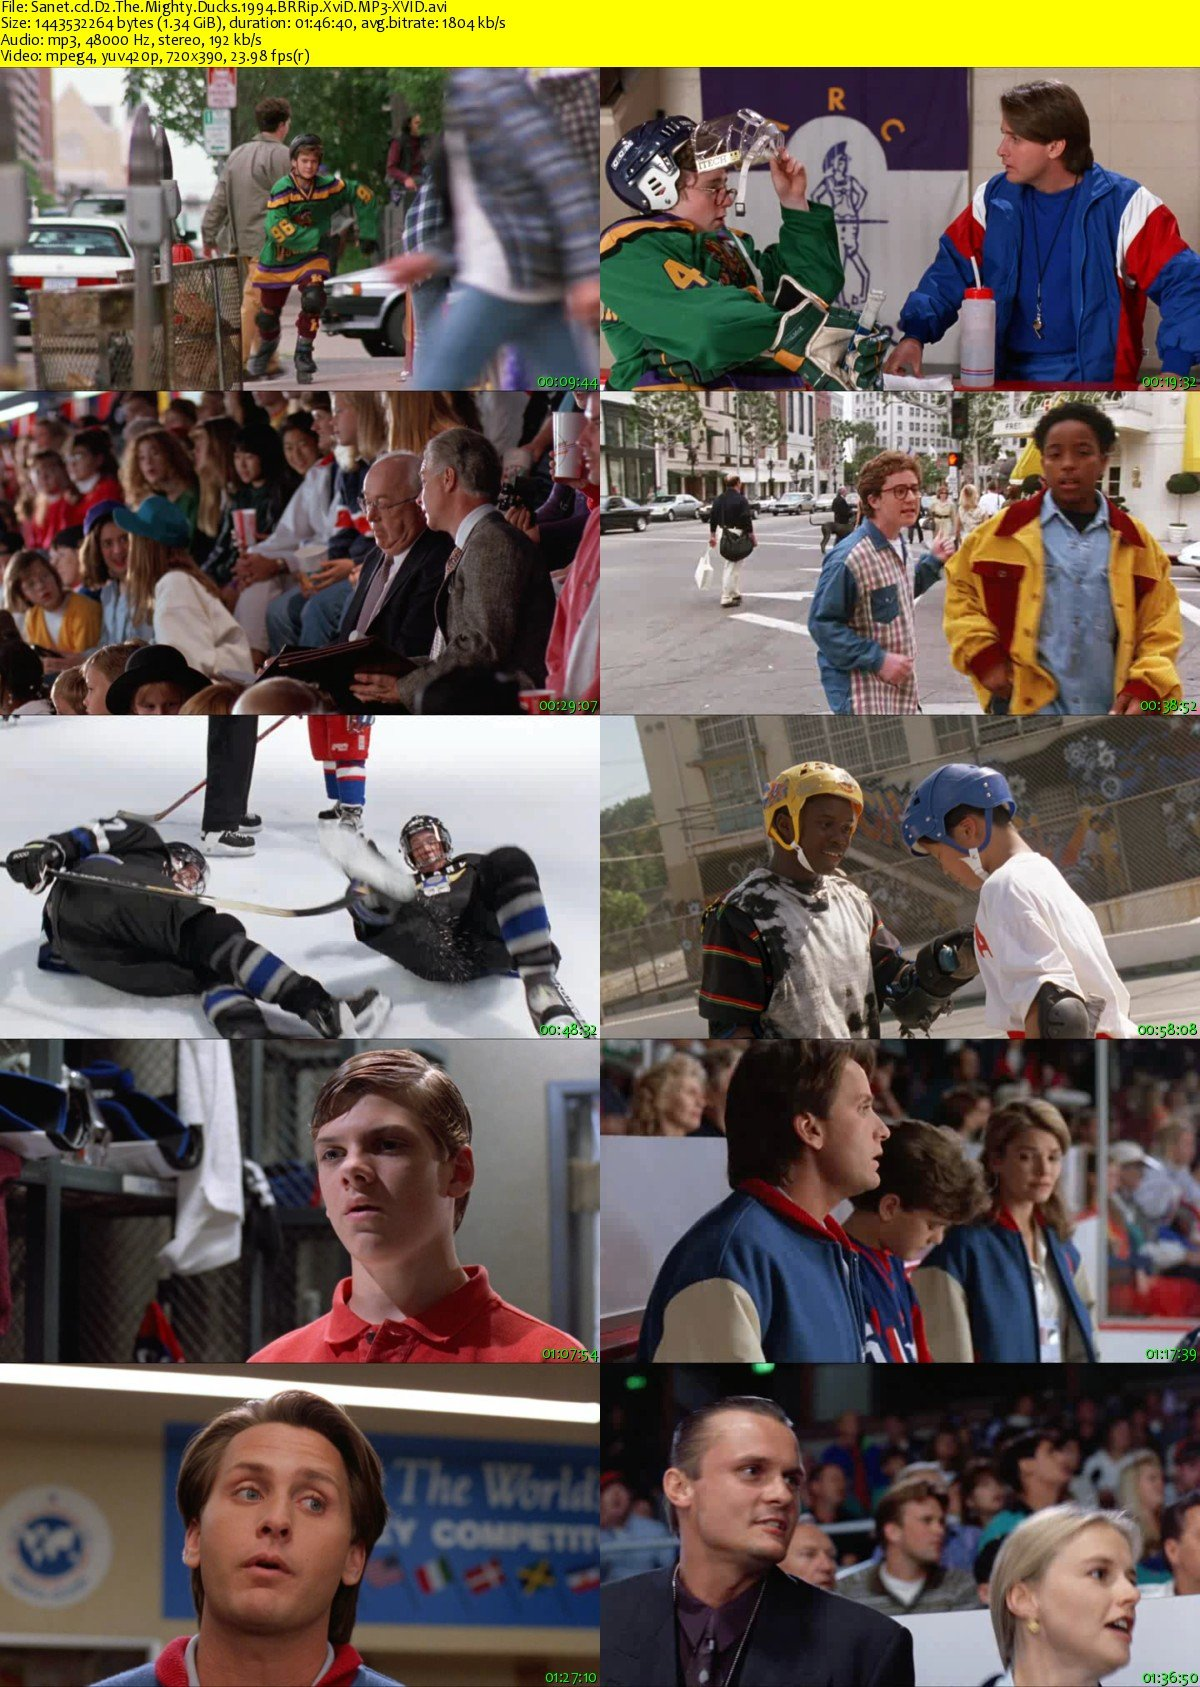 download d2 the mighty ducks 1994 brrip xvid mp3xvid